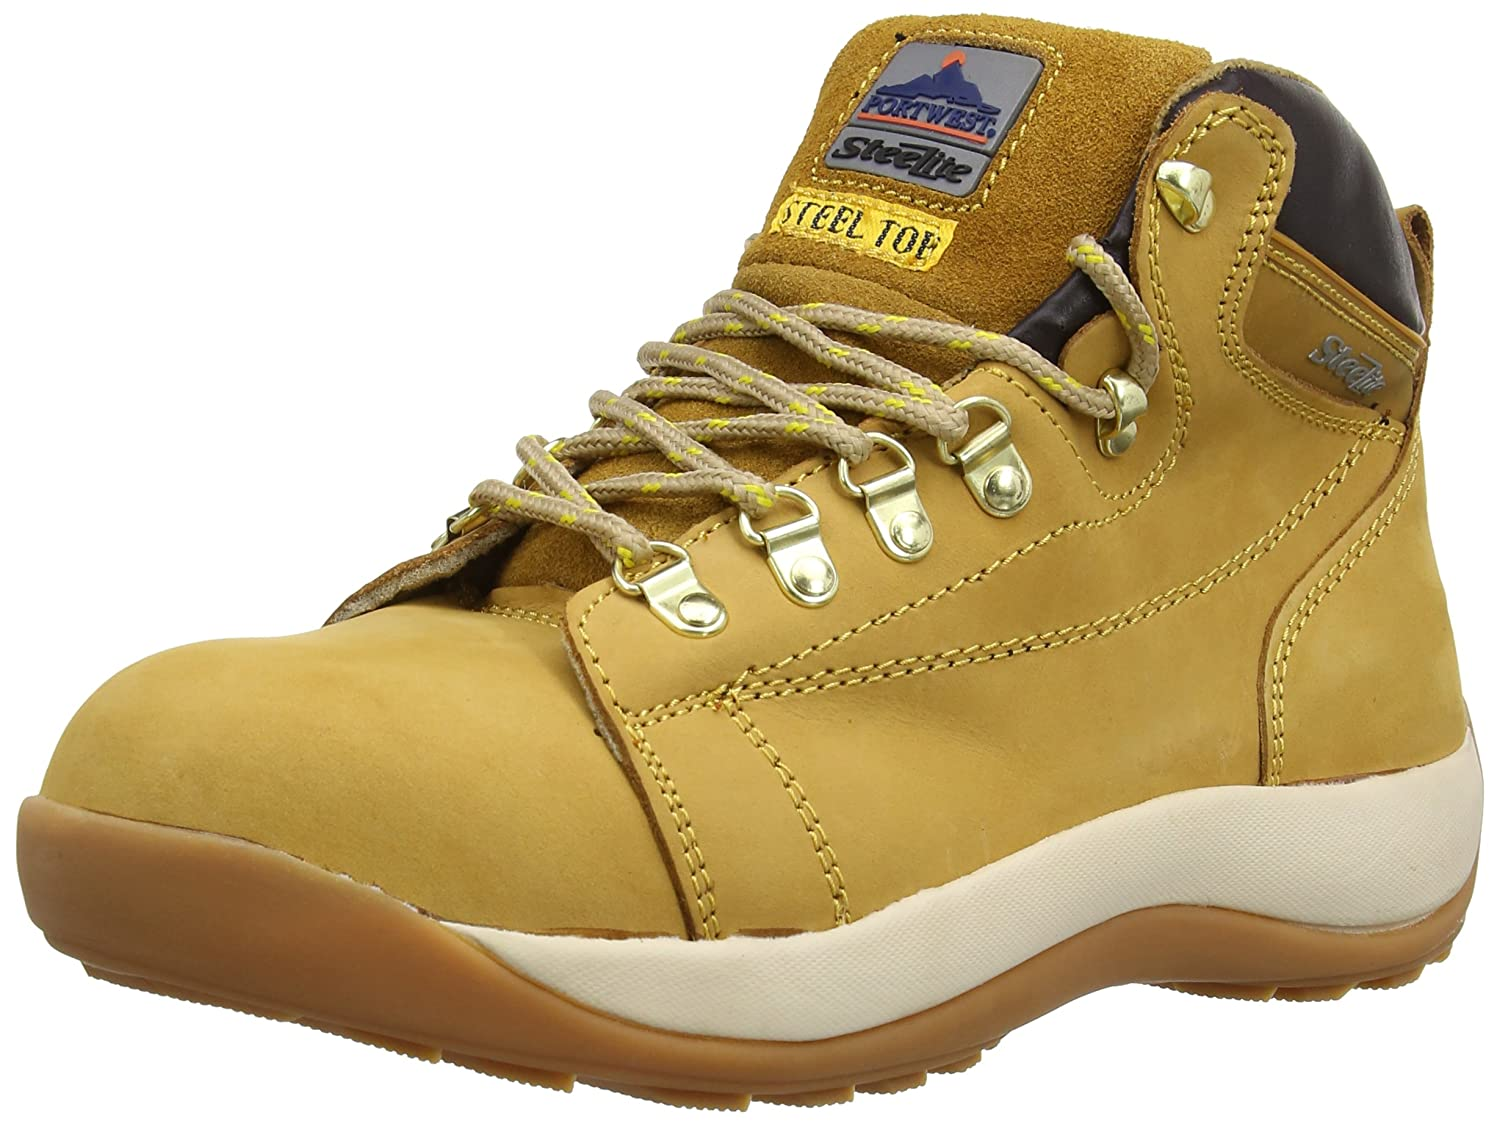 TALLA 42 EU. Portwest Steelite Mid Cut Nubuck SB - Botas de seguridad para hombre, color Marrón (Honey), talla 42 EU